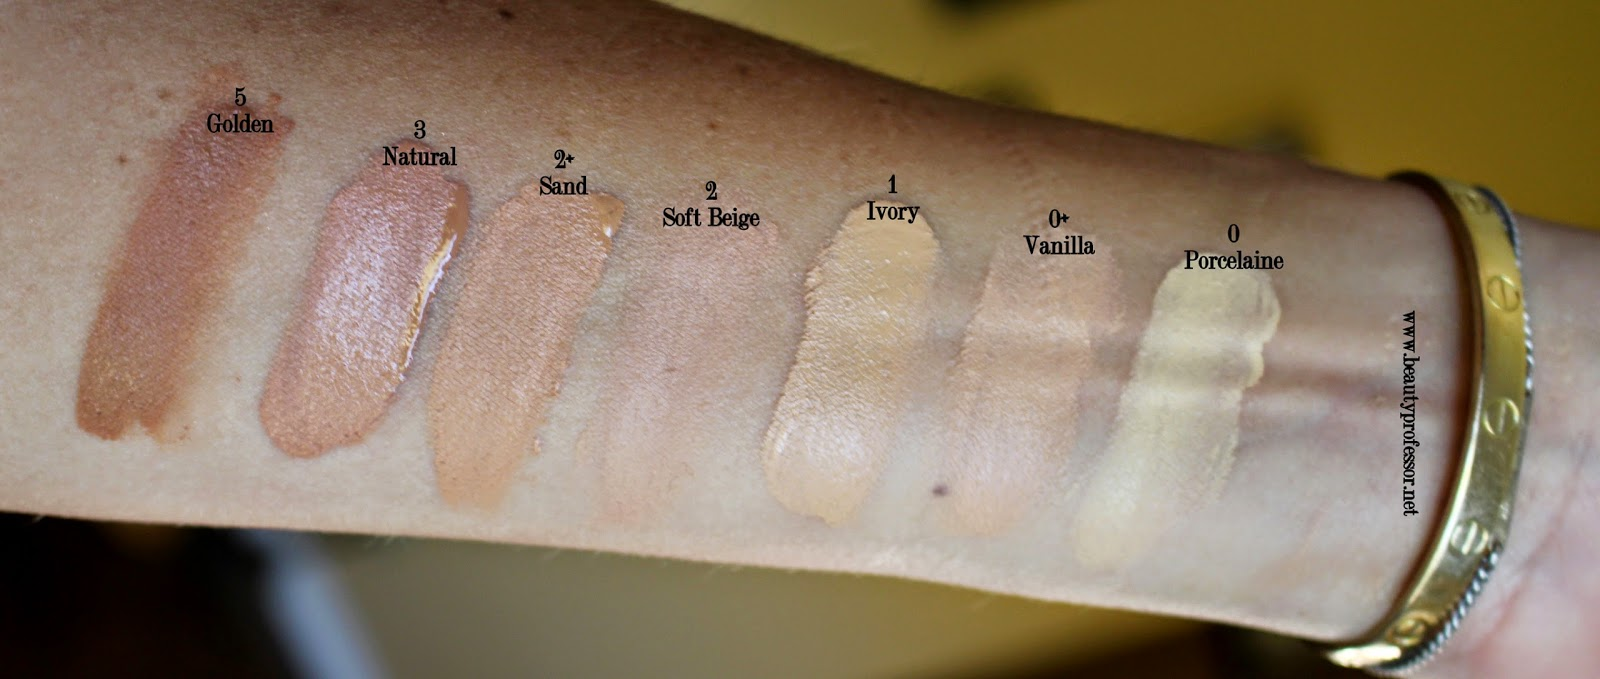 sisley phyto teint expert foundation swatches